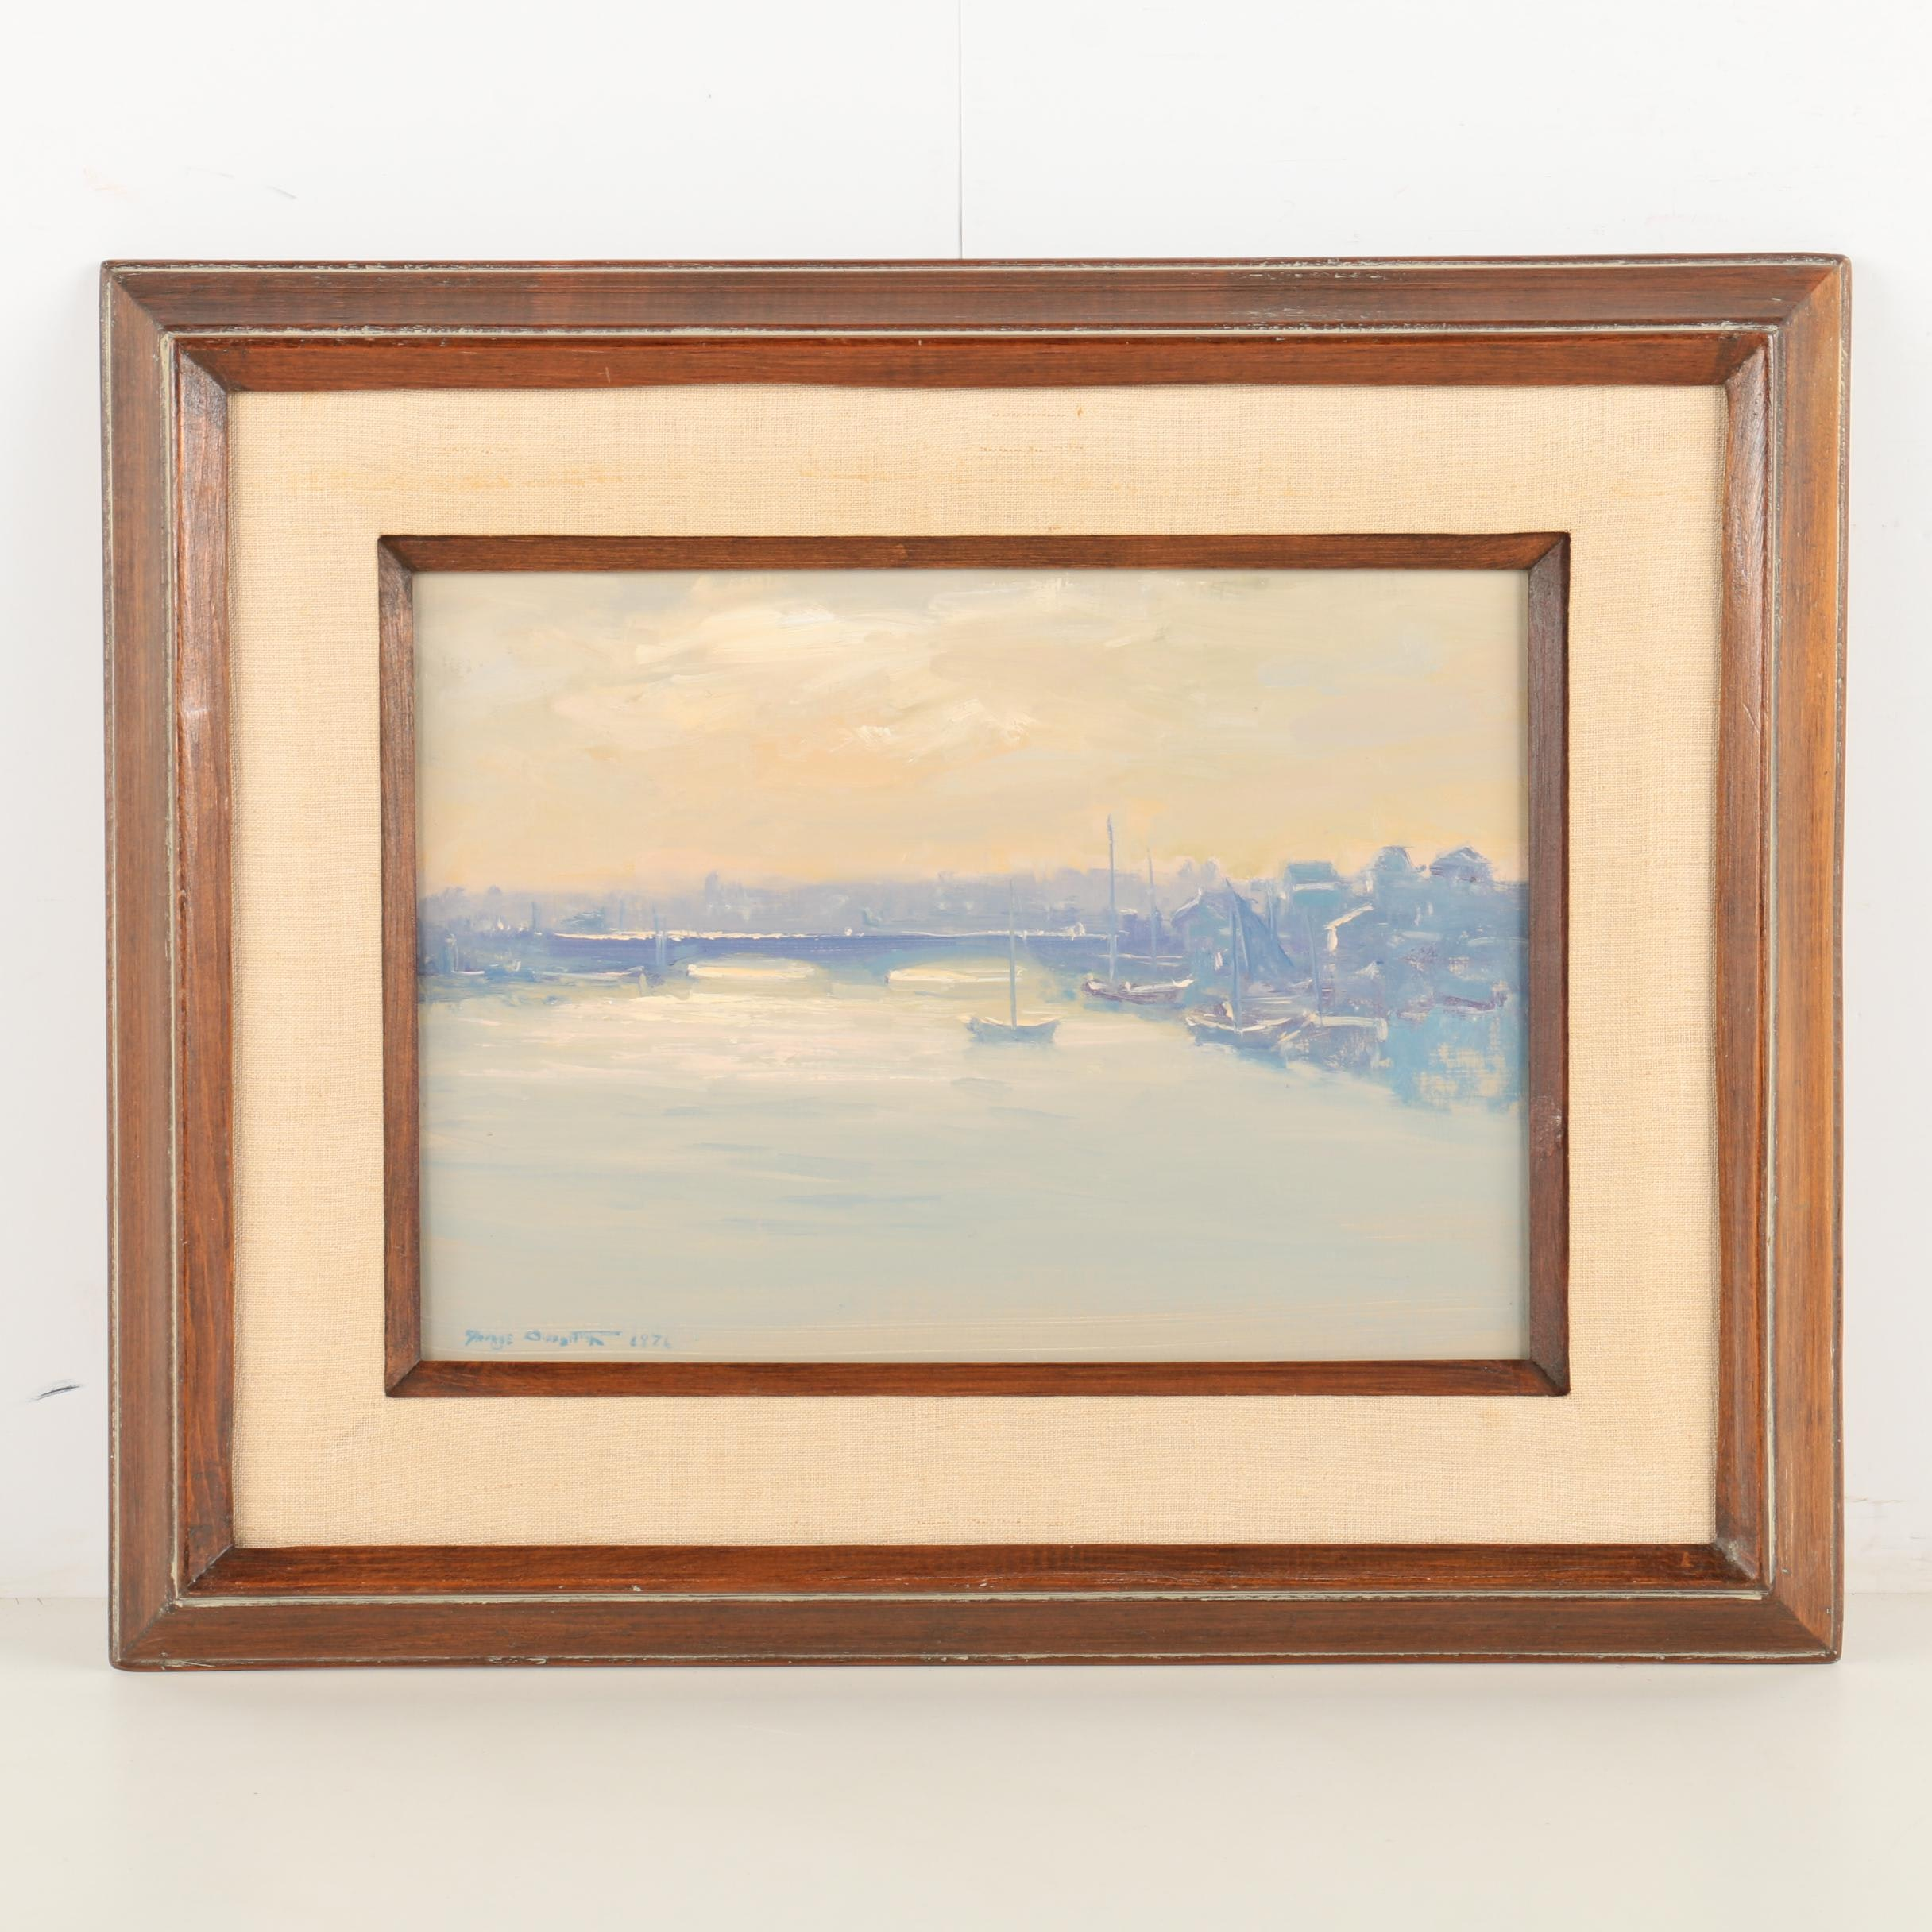 George Carpenter 1970s Oil Painting on Board of Foggy New England Harbor